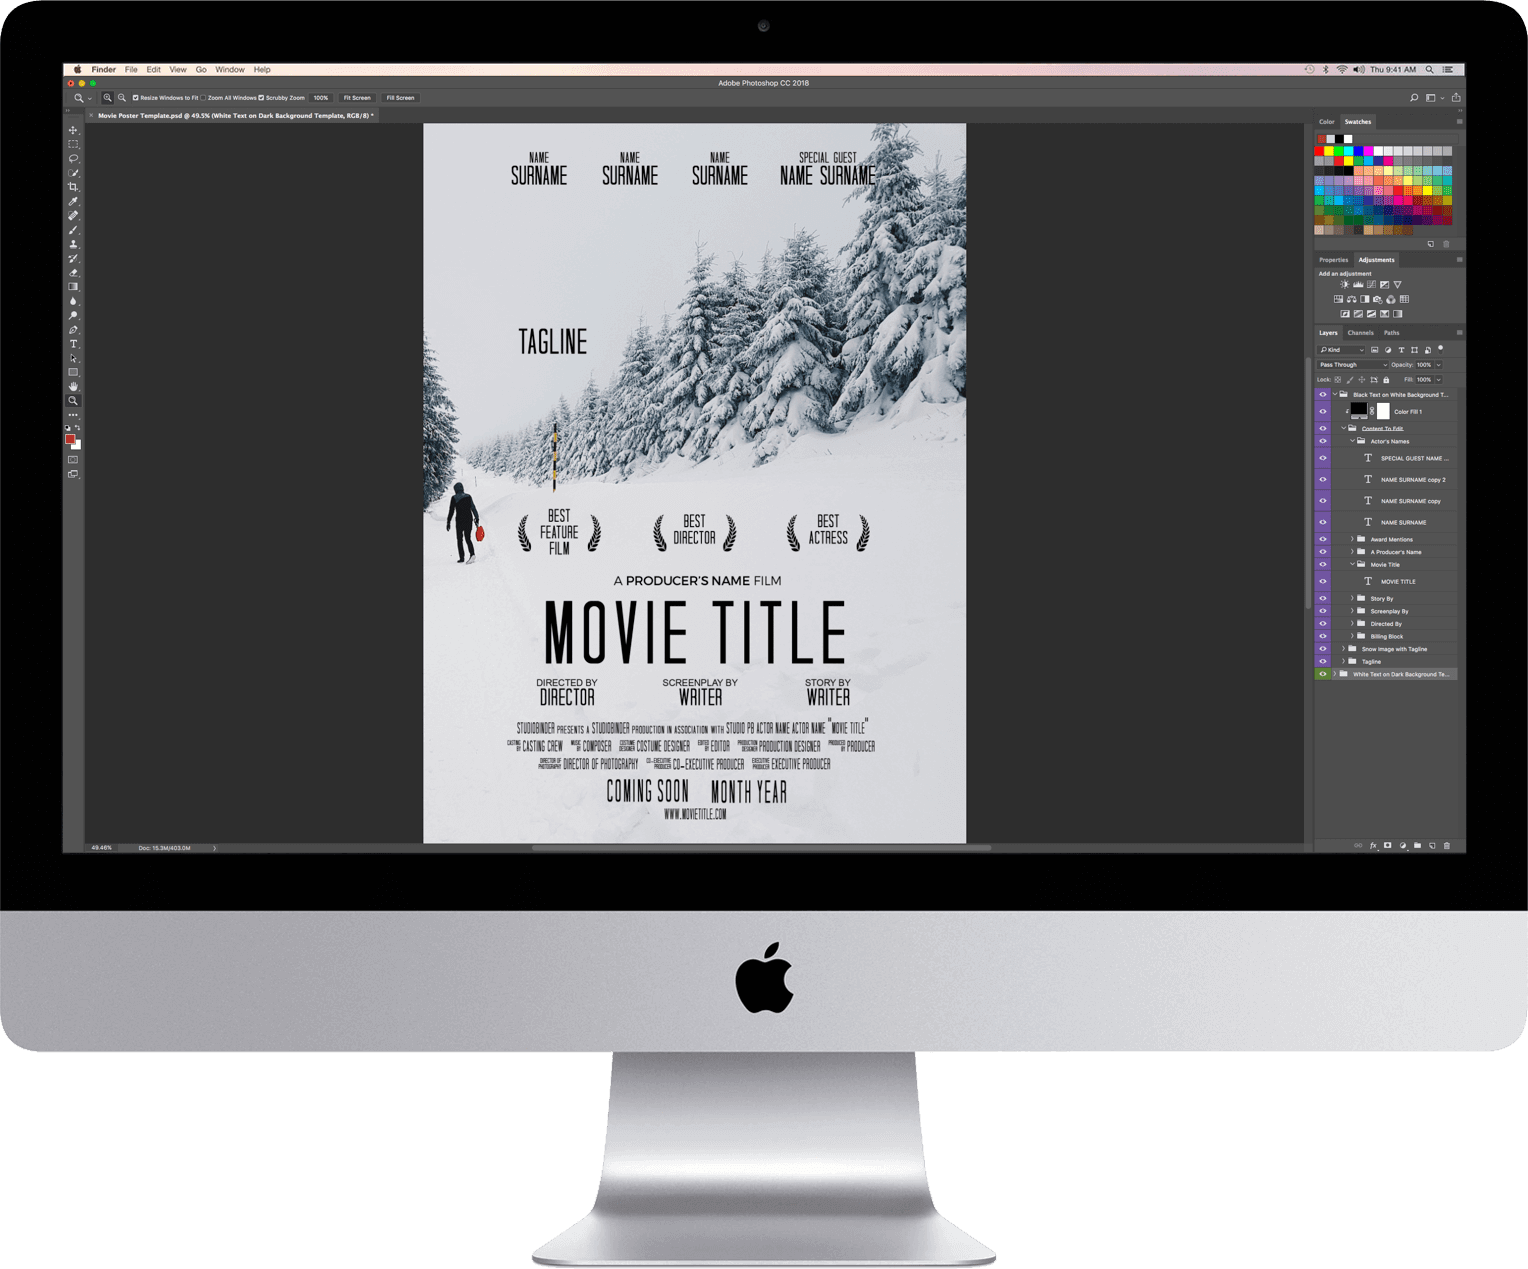 Download Your FREE Movie Poster Template for Photoshop | StudioBinder